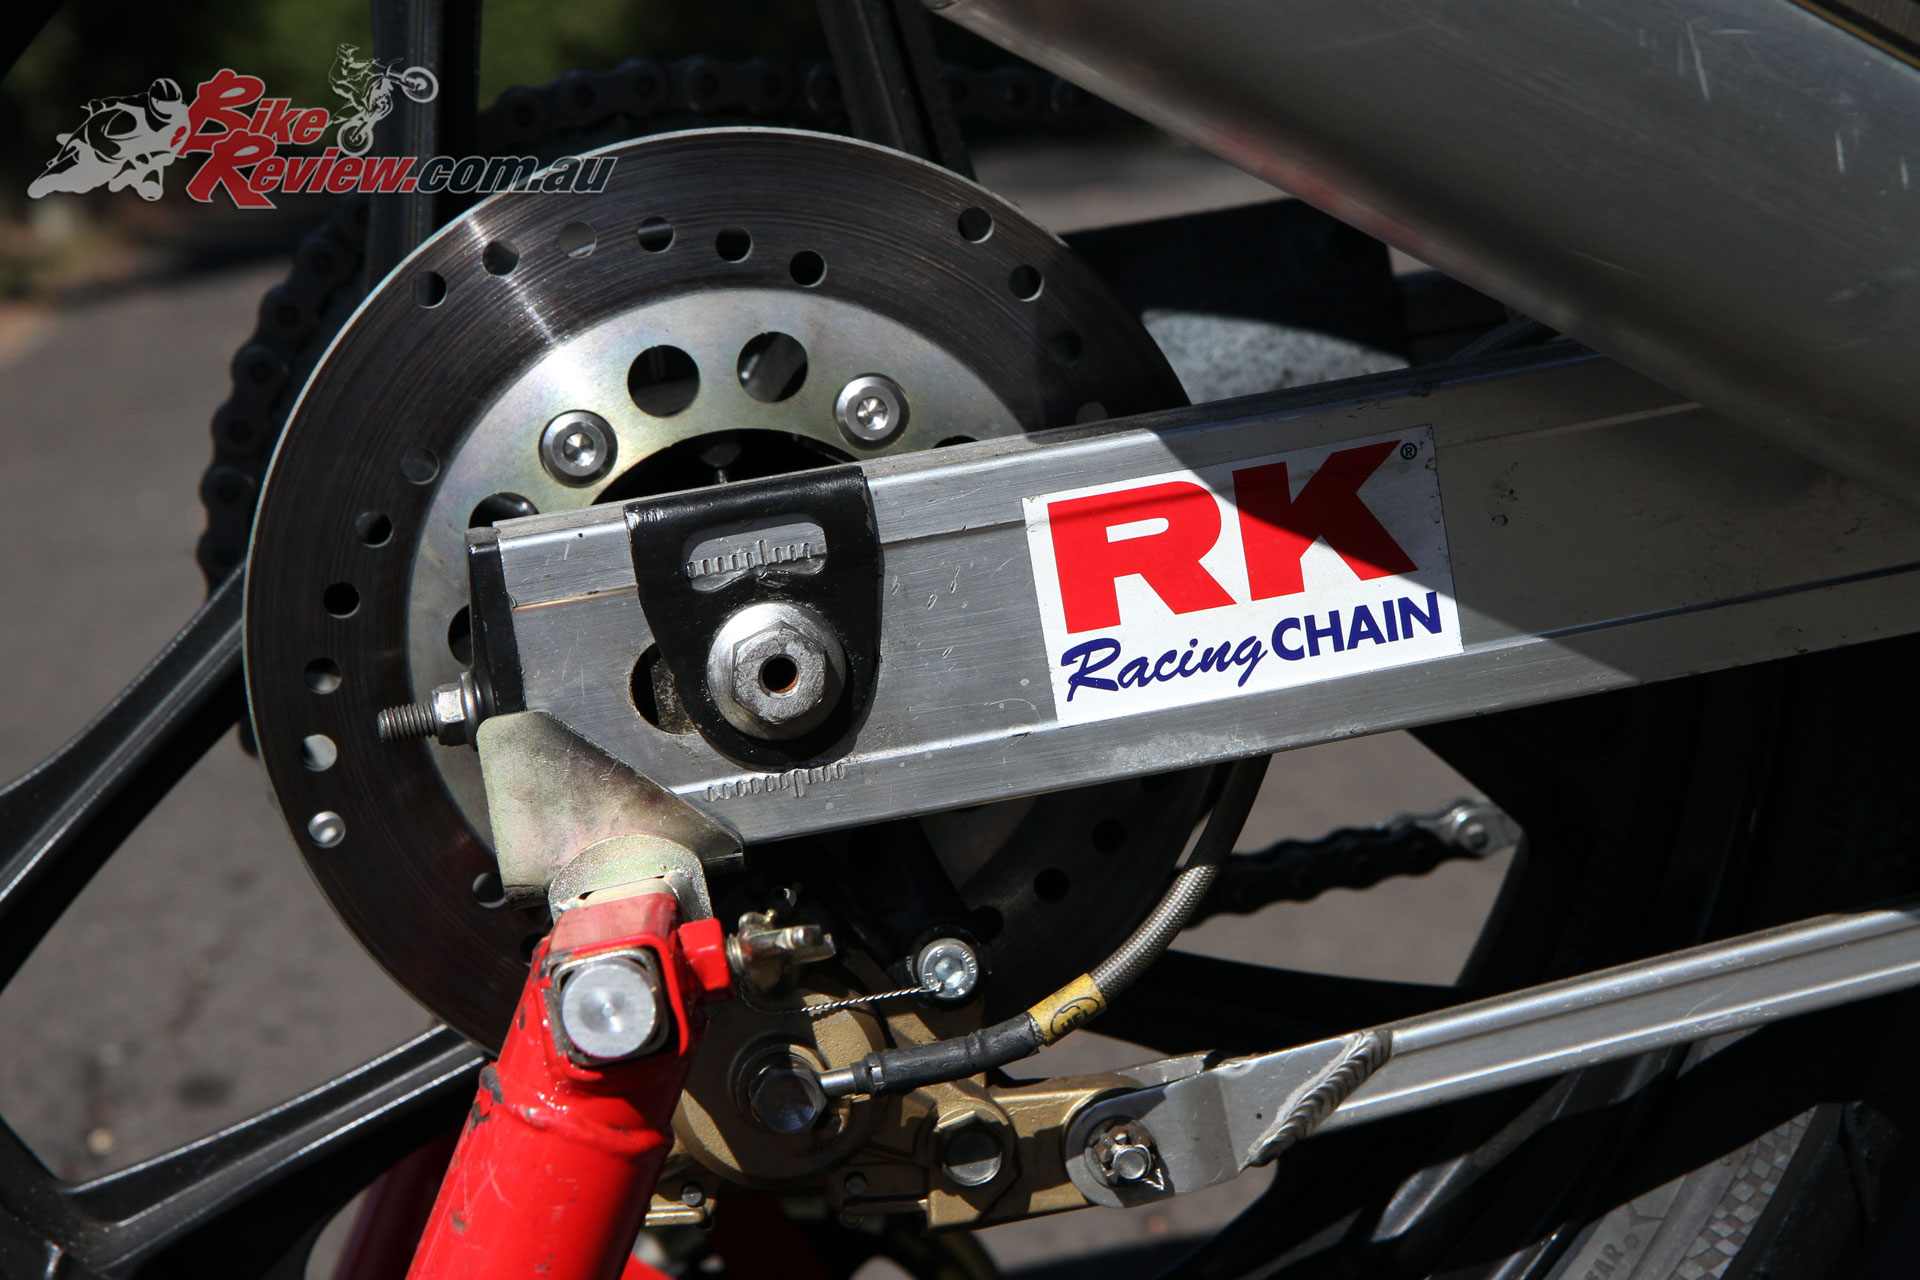 New brake rotors were sourced through Wemoto